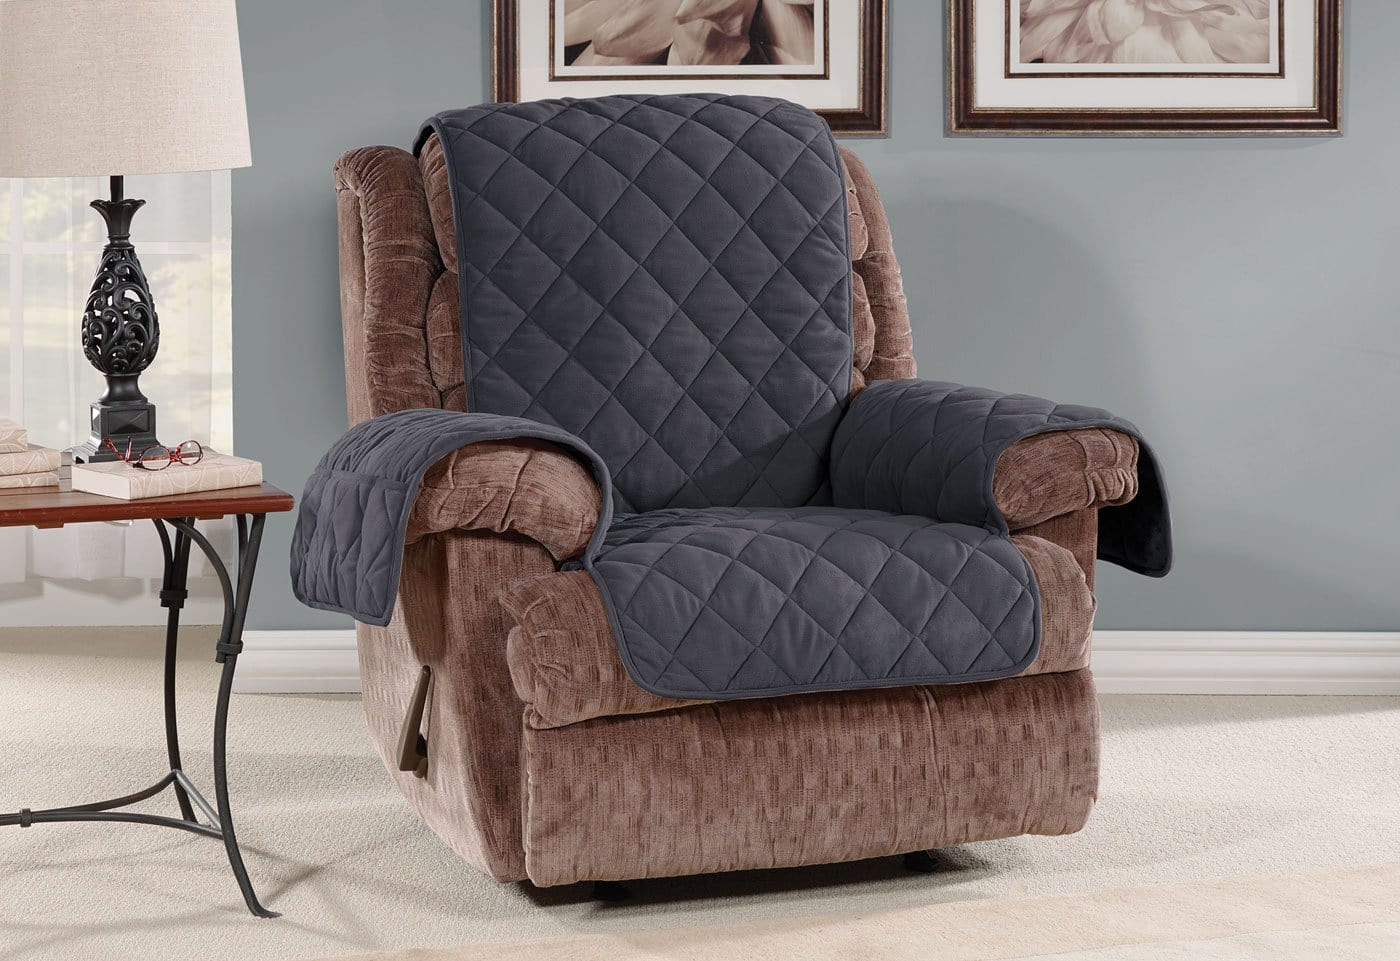 Oversized Microfleece Recliner Furniture Cover Pet Furniture Cover Machine Washable - Recliner / Storm Blue